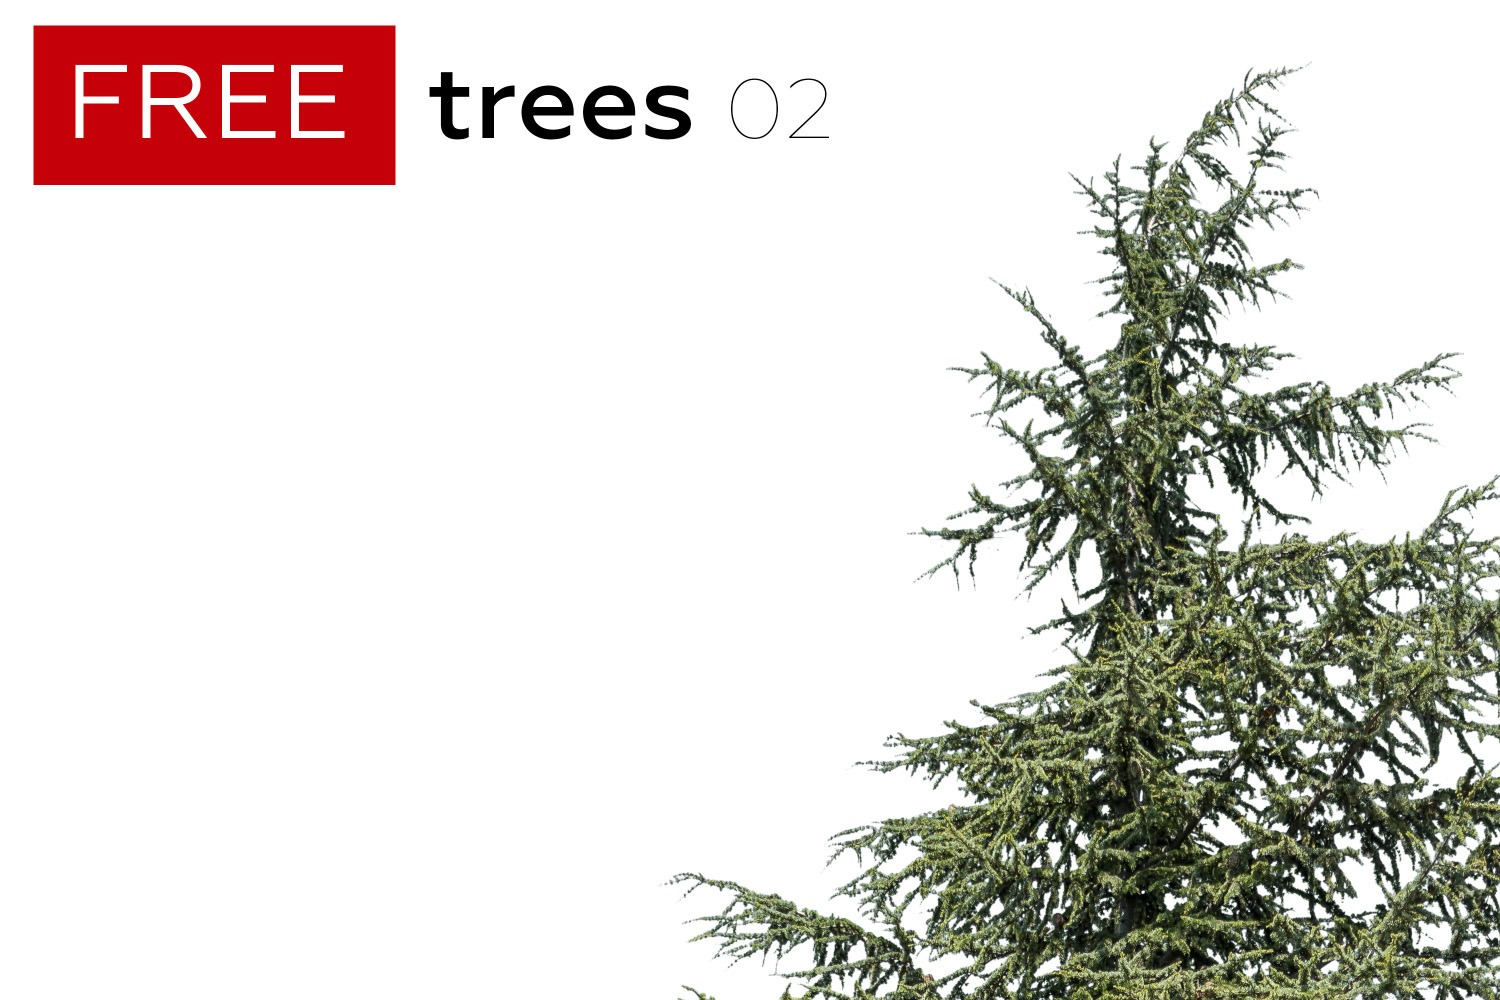 FREE STUFF - 4 Free Trees - Volume 2